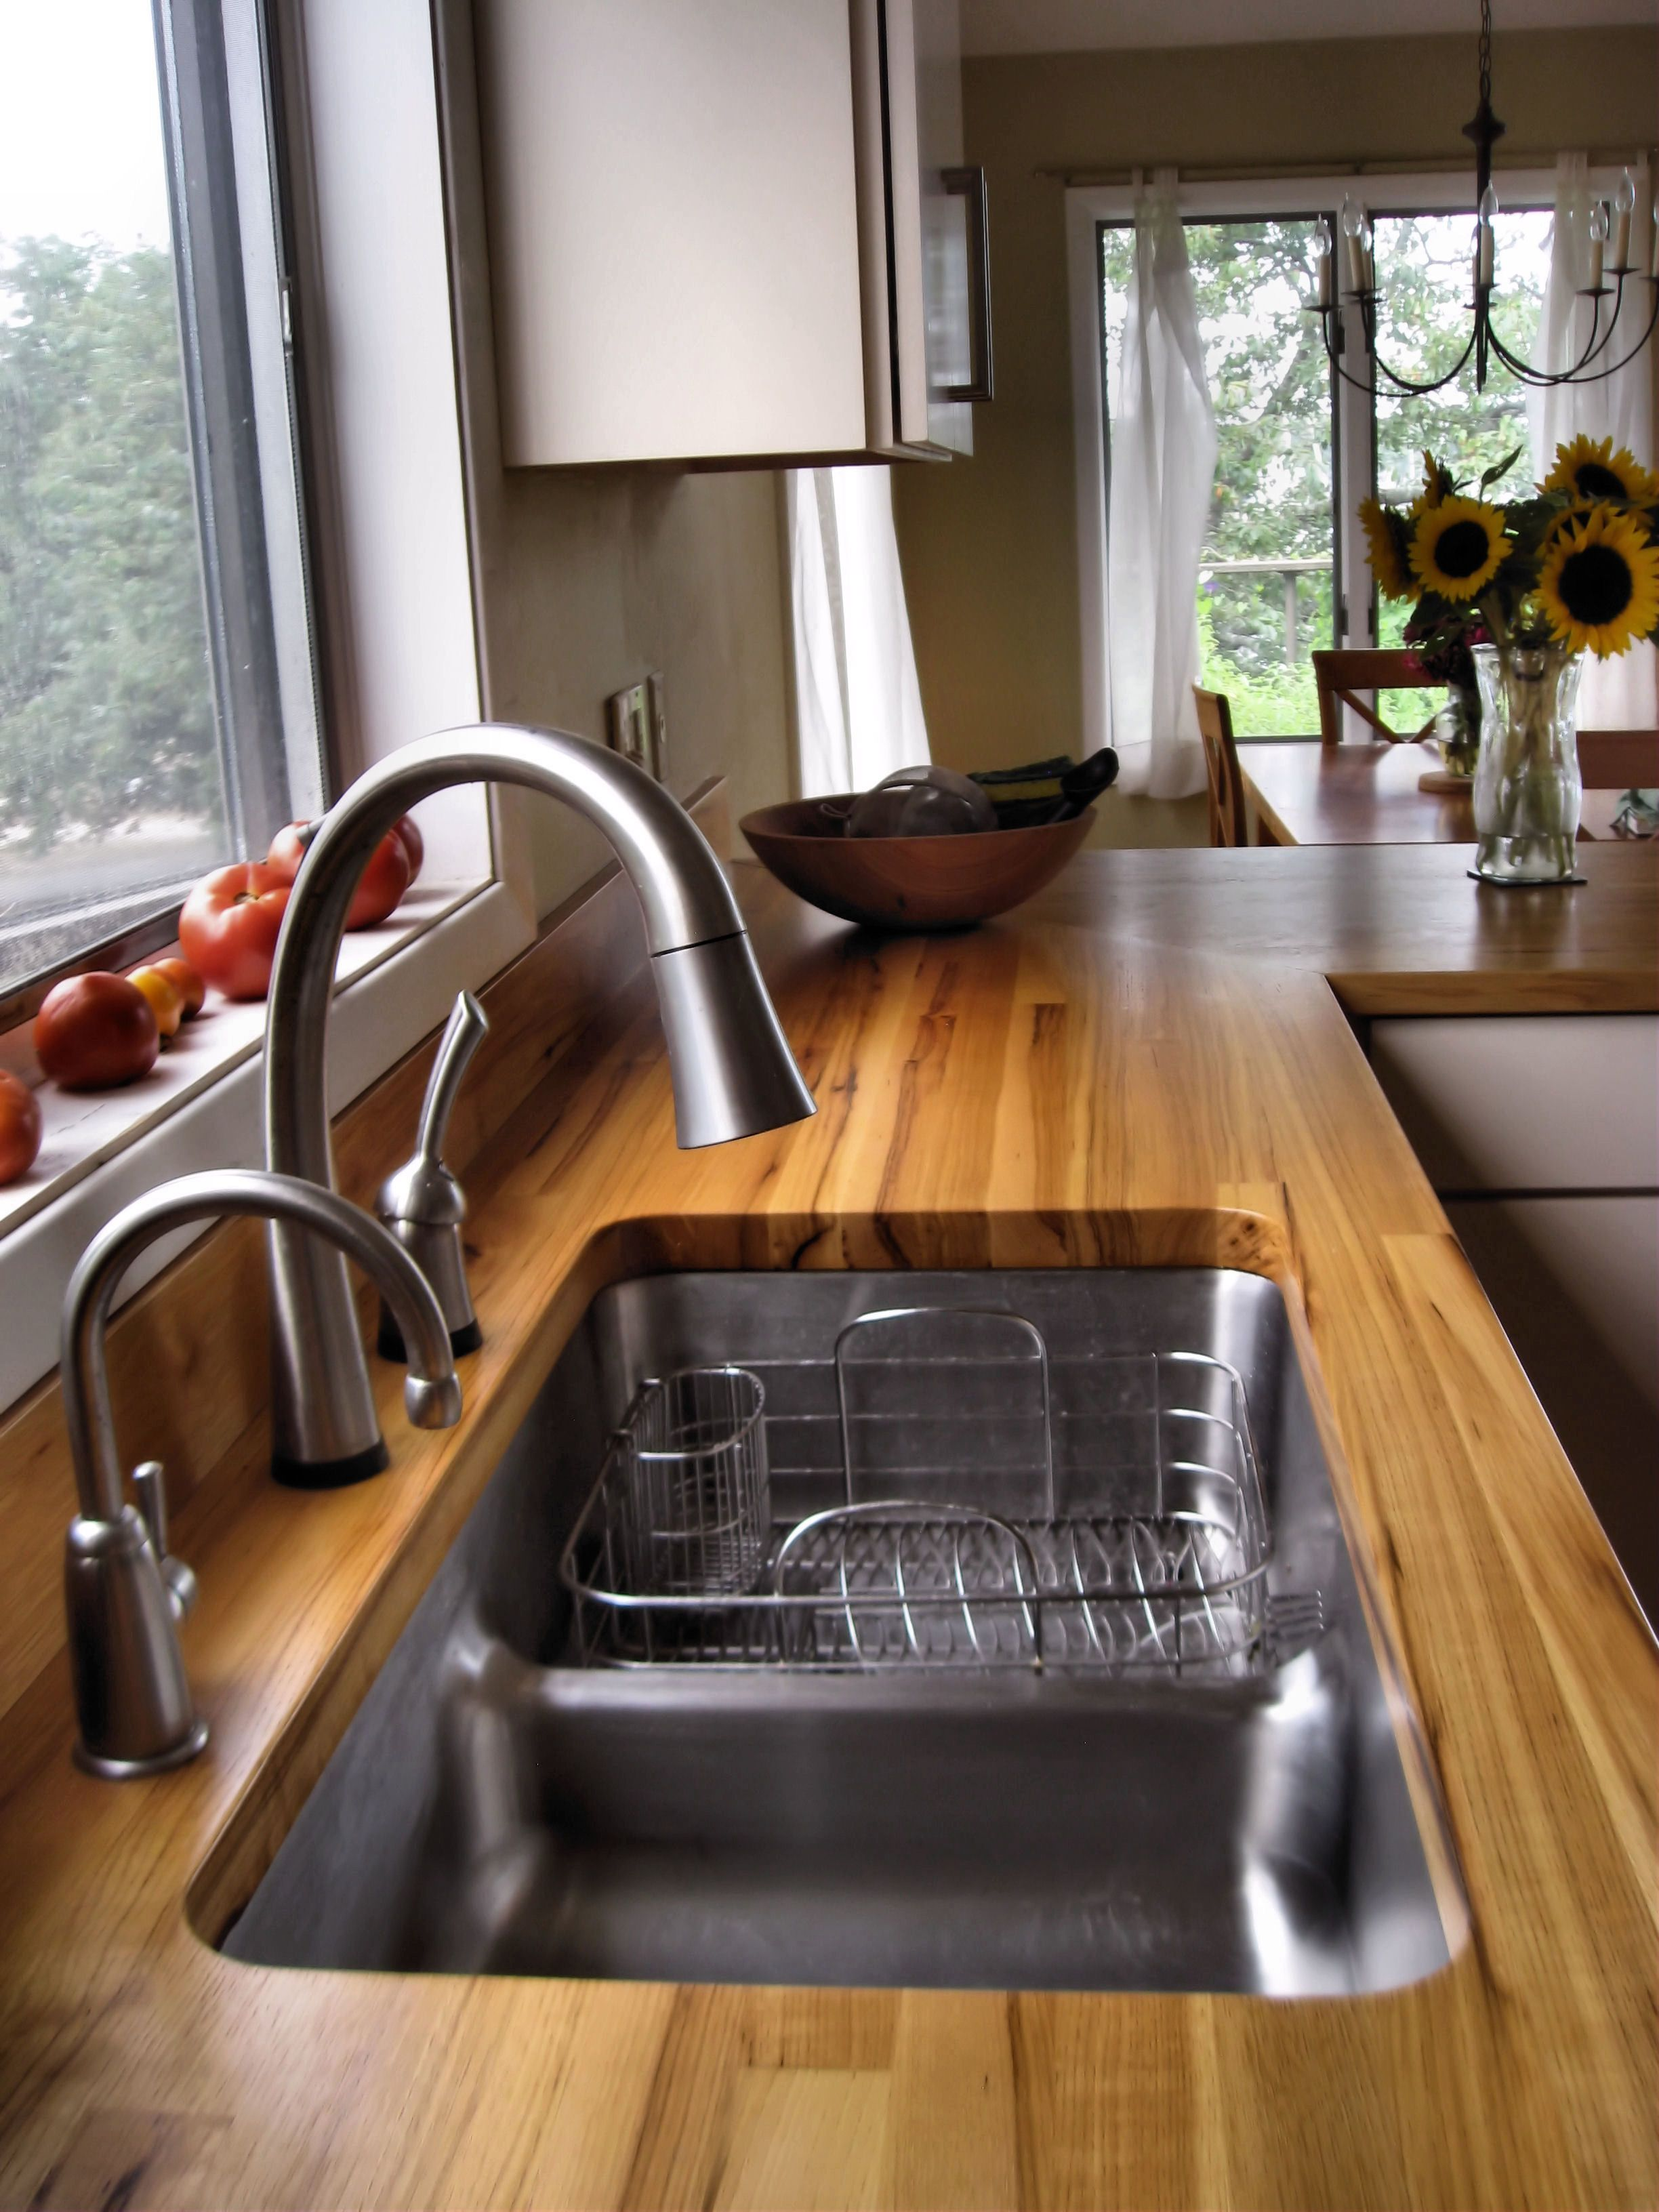 Edge Grain Pecan Countertop With Undermount Sink And Waterlox Finish